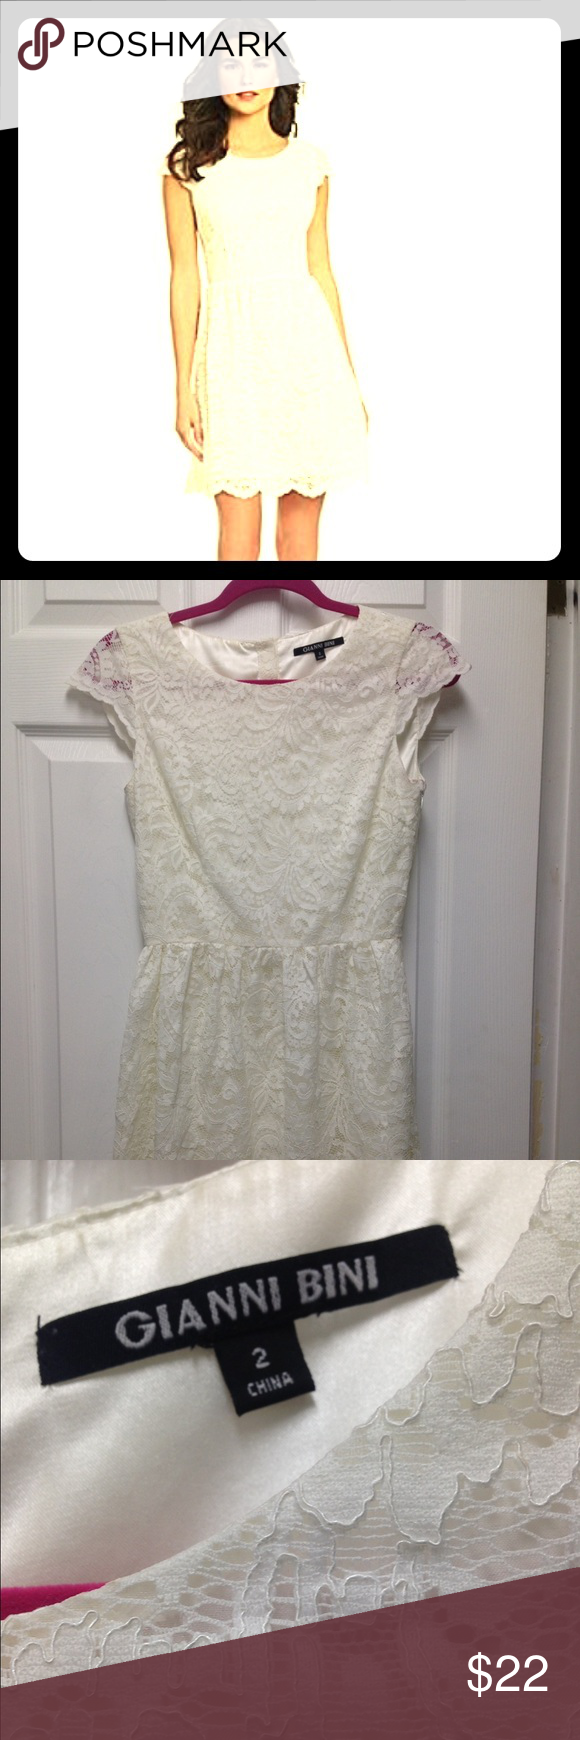 Gianni Bini Dress This cream lace dress is prefect for any occasion. It has a button down back cap sleeves with scalloped edges. It has a cream silky lining. It is the prefect frilly touch. Gianni Bini Dresses